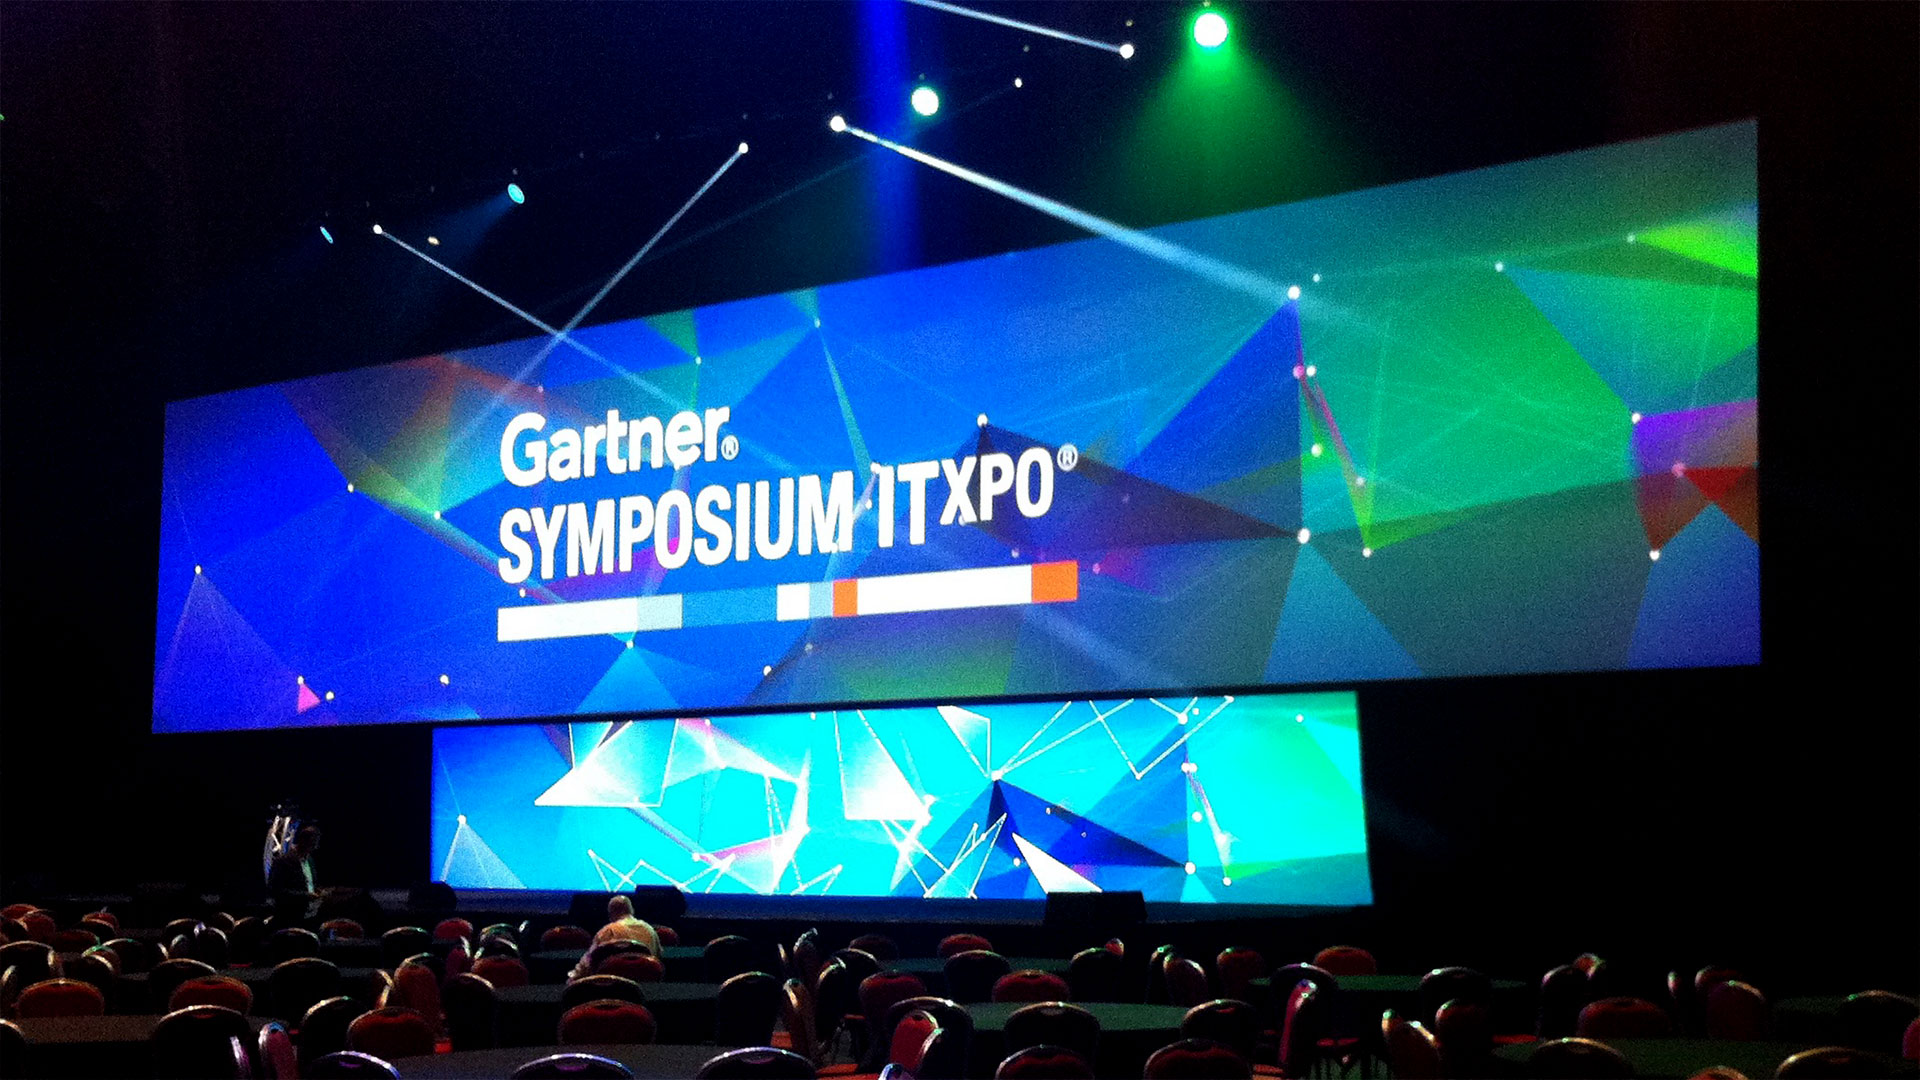 LED Screens for Gartner ITxpo 2015